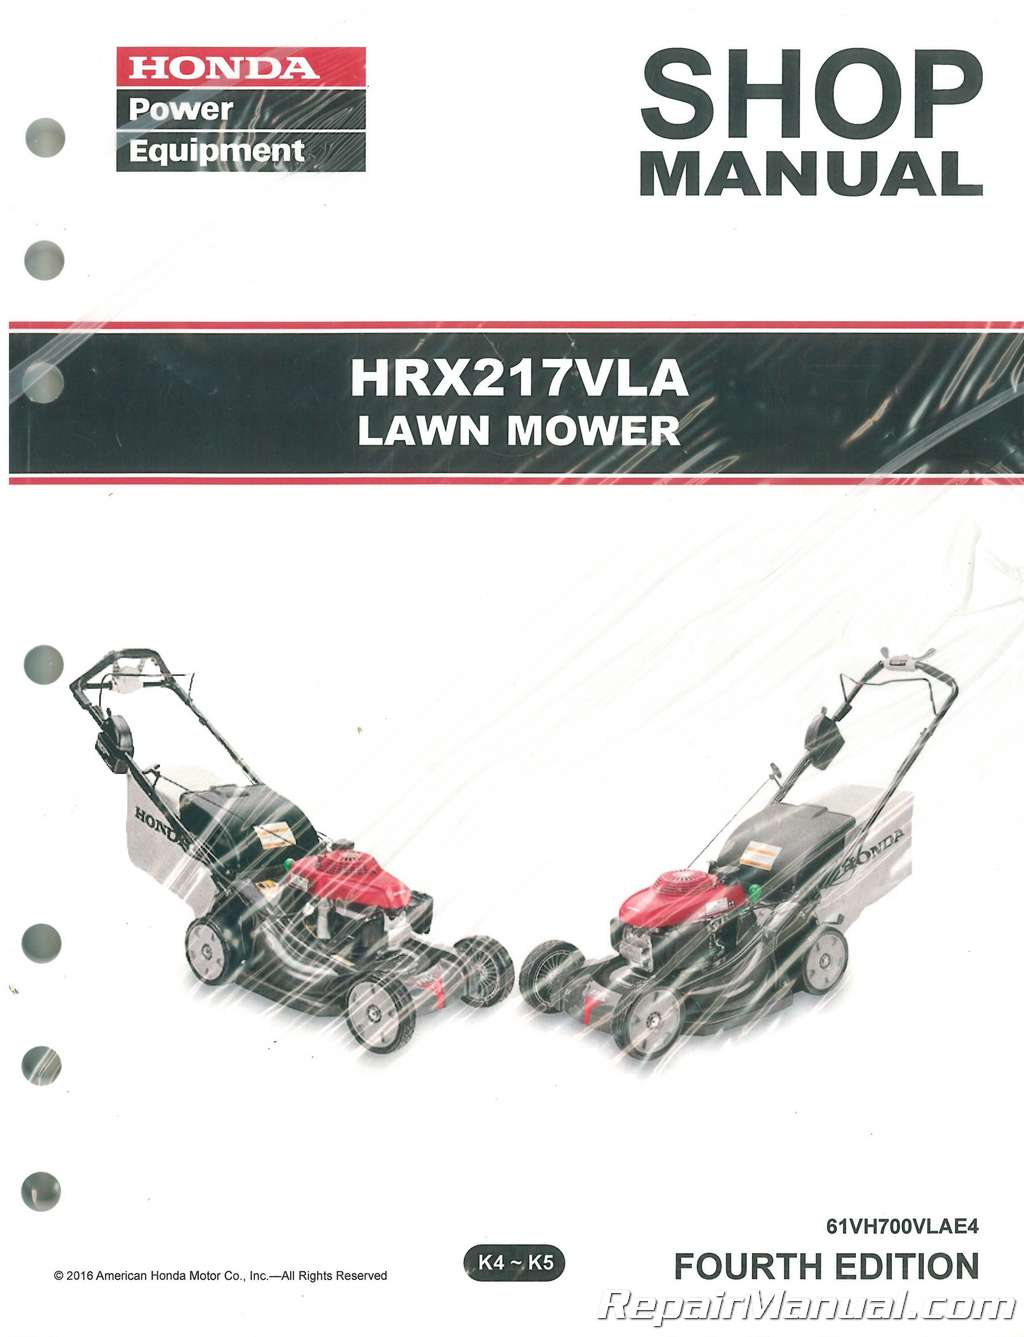 honda hrx217 vla lawn mower repair service shop manual rh repairmanual com Push Reel Lawn Mower Manual Manual Push Mower Blades